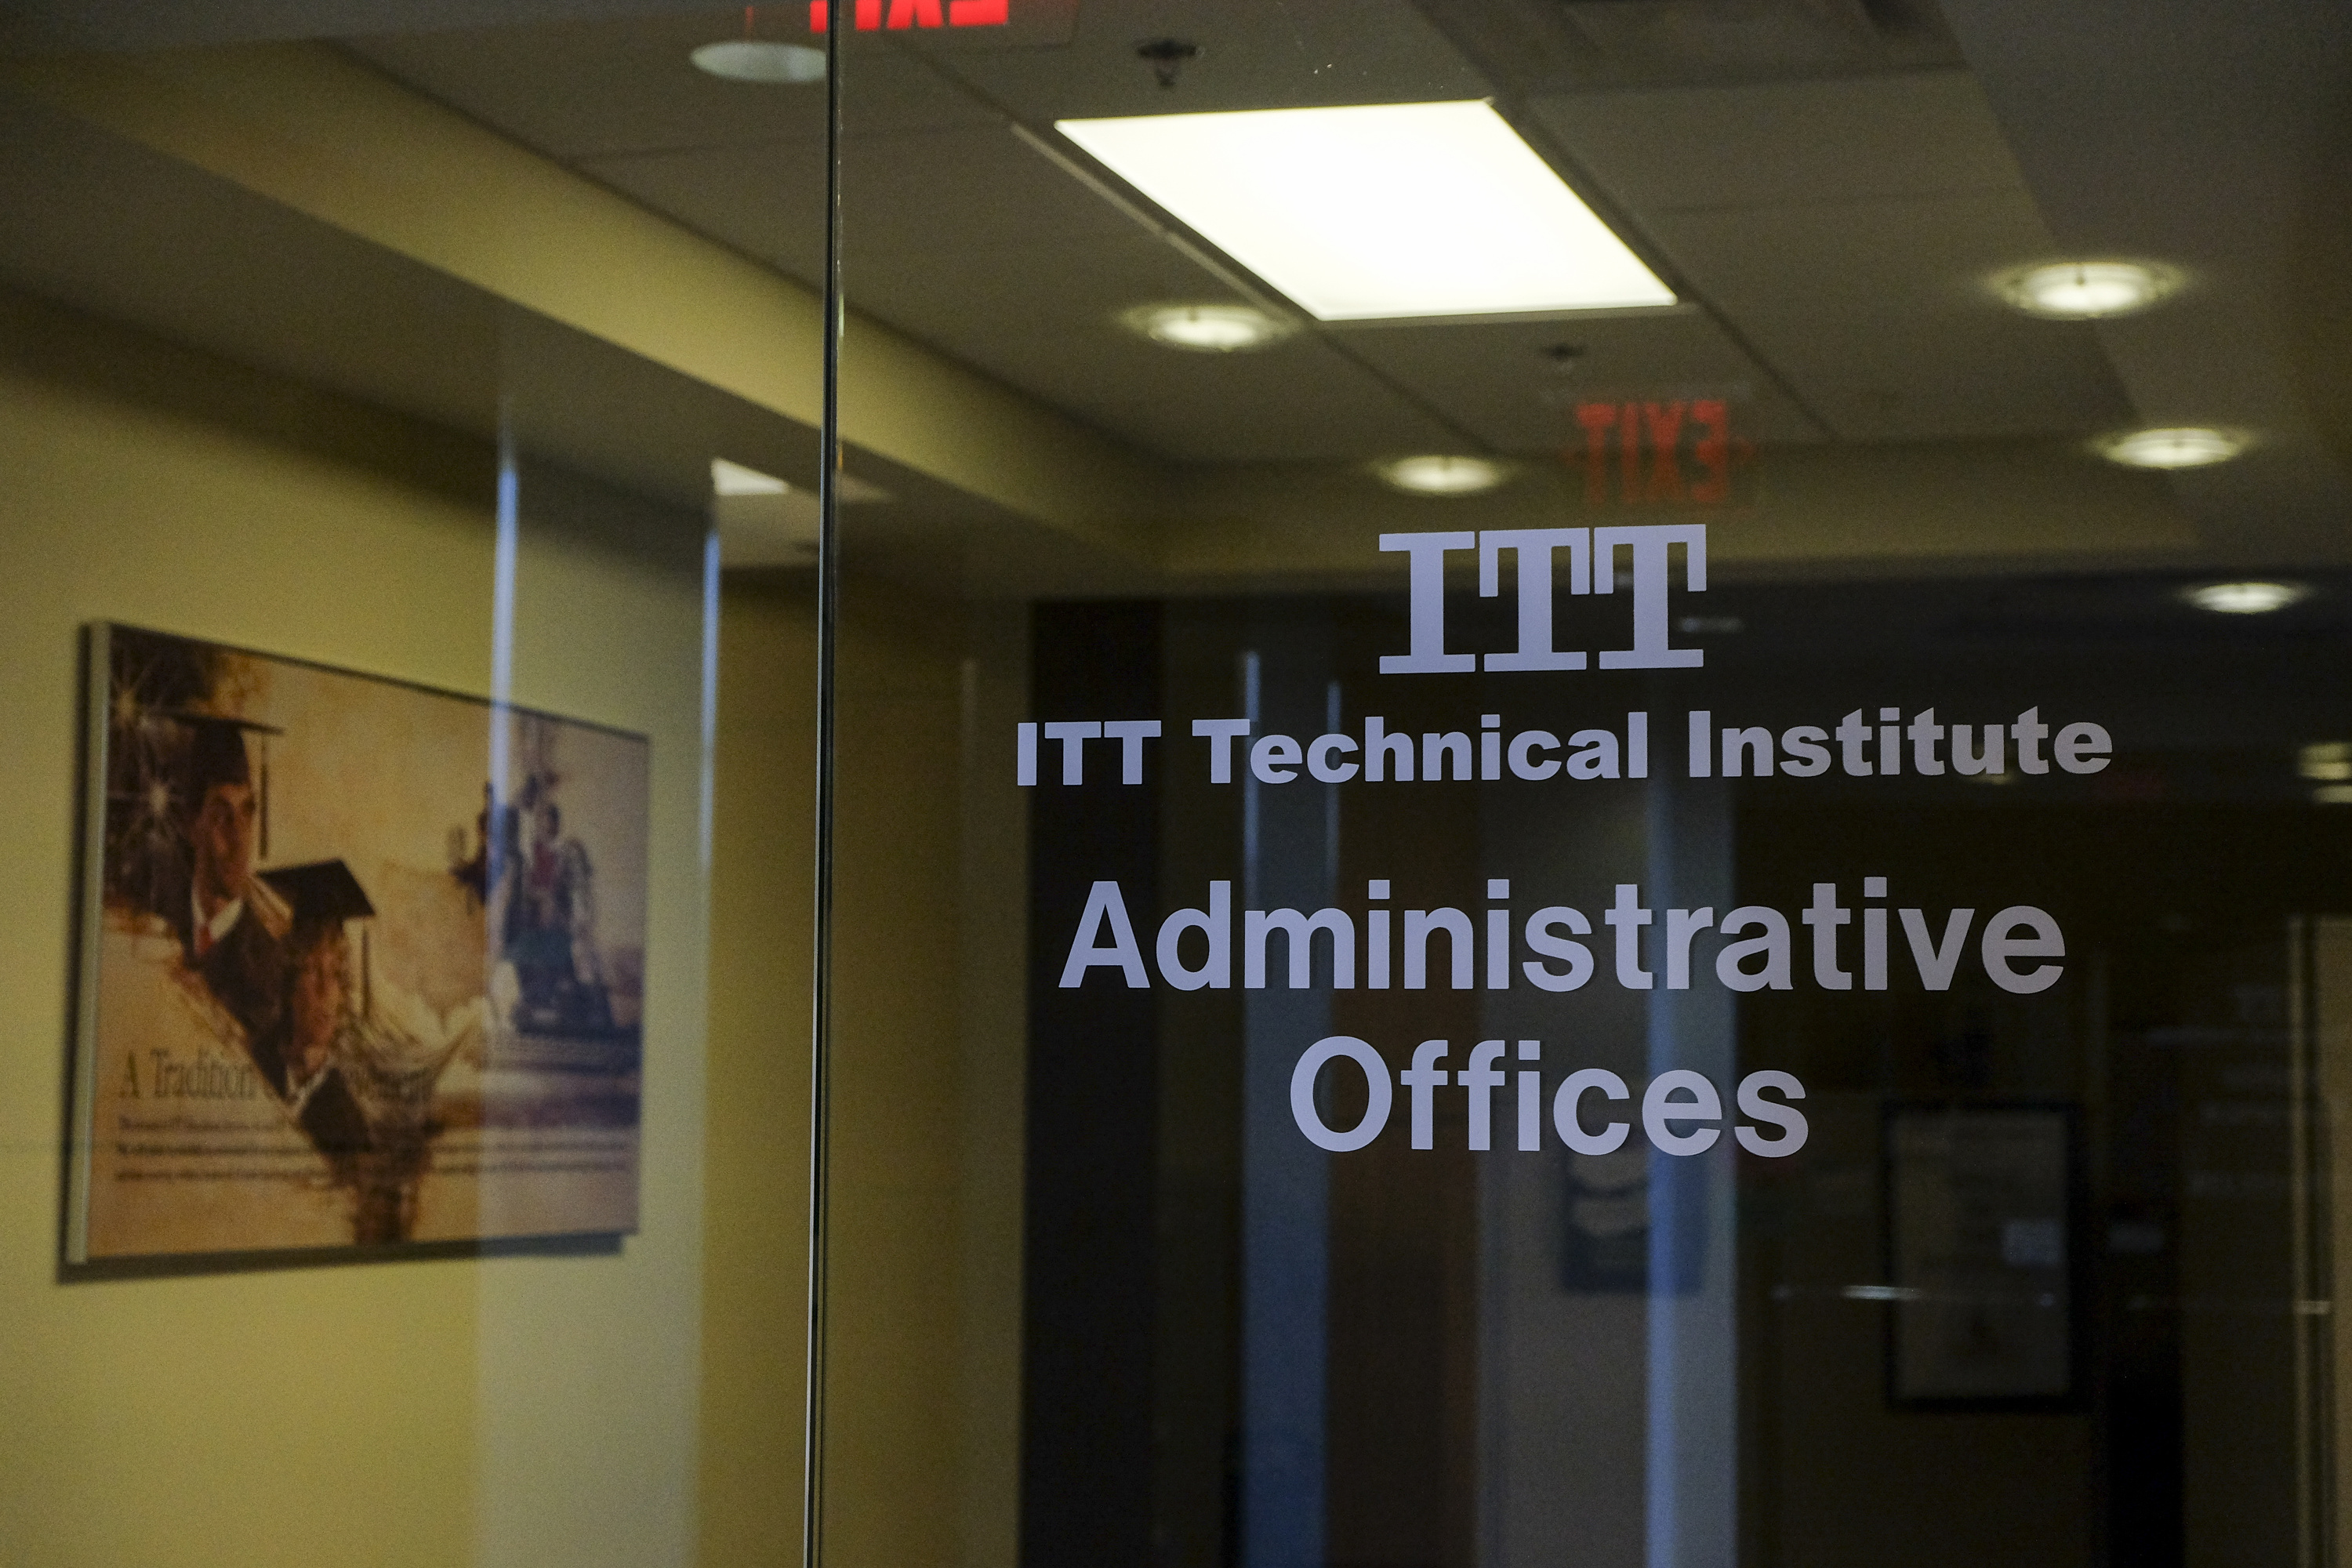 The Chantilly Campus of ITT Technical Institute sits closed and empty on Sept. 6, 2016.